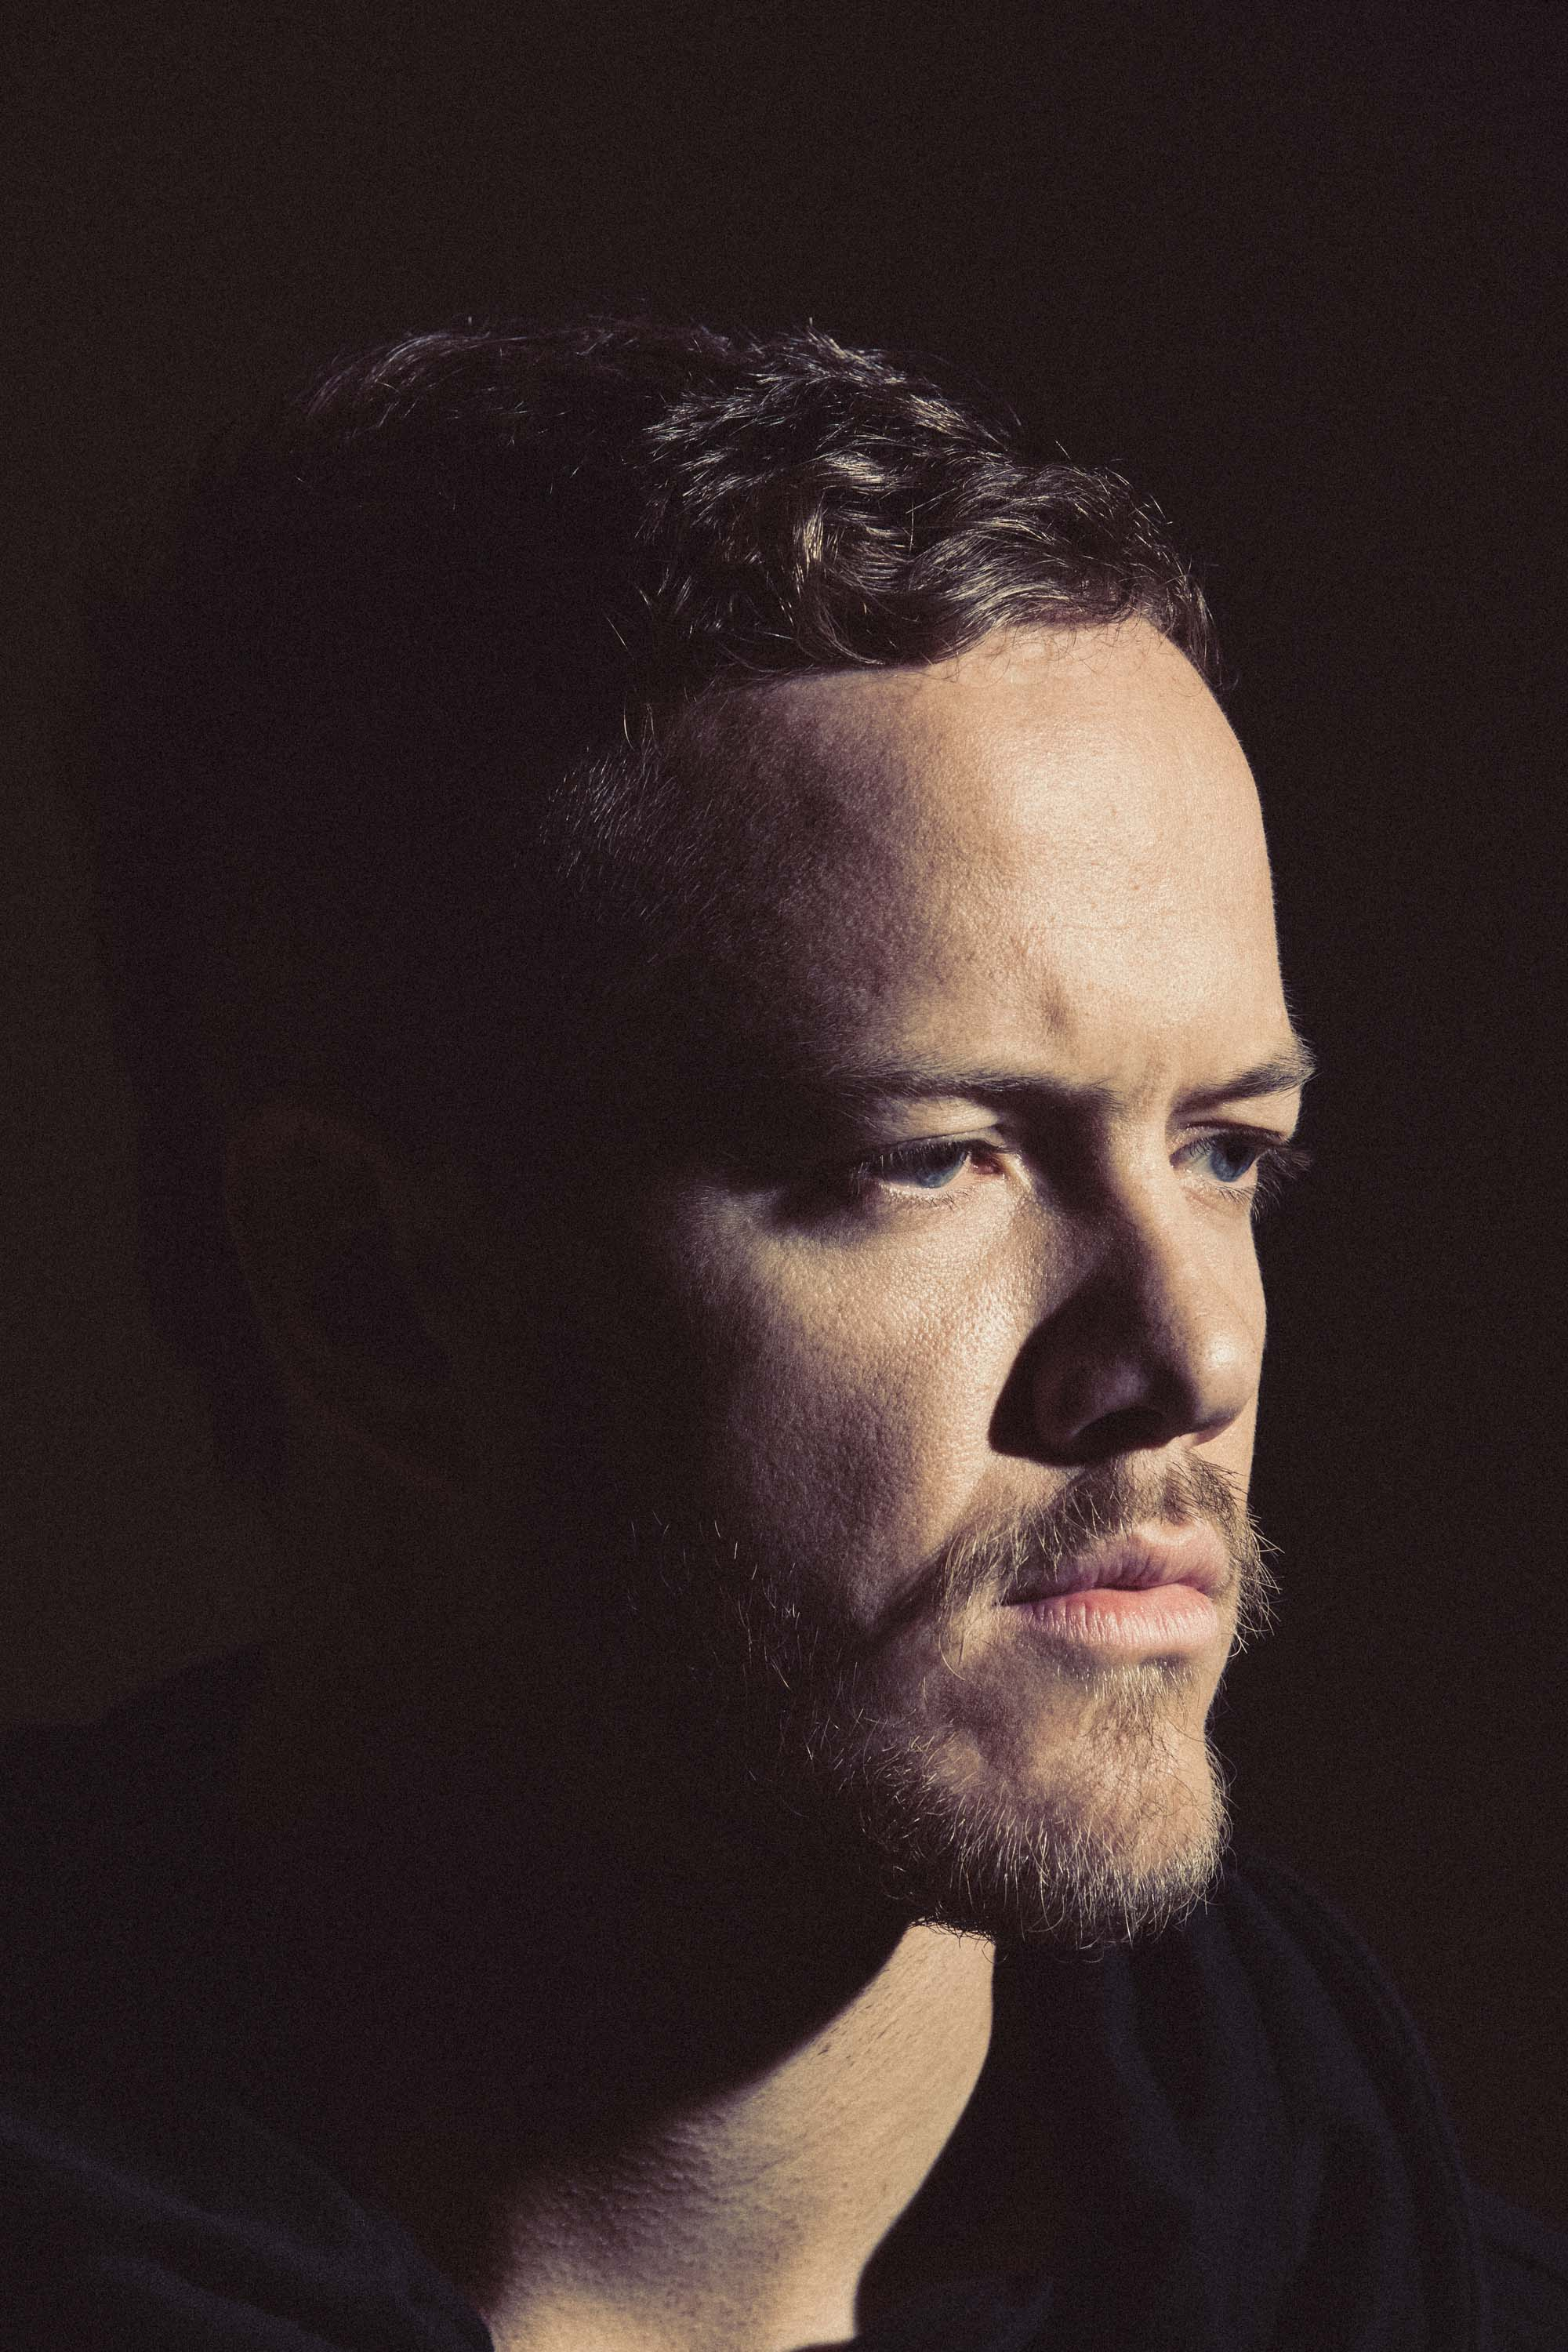 imaginedragons_0025_v02.jpg